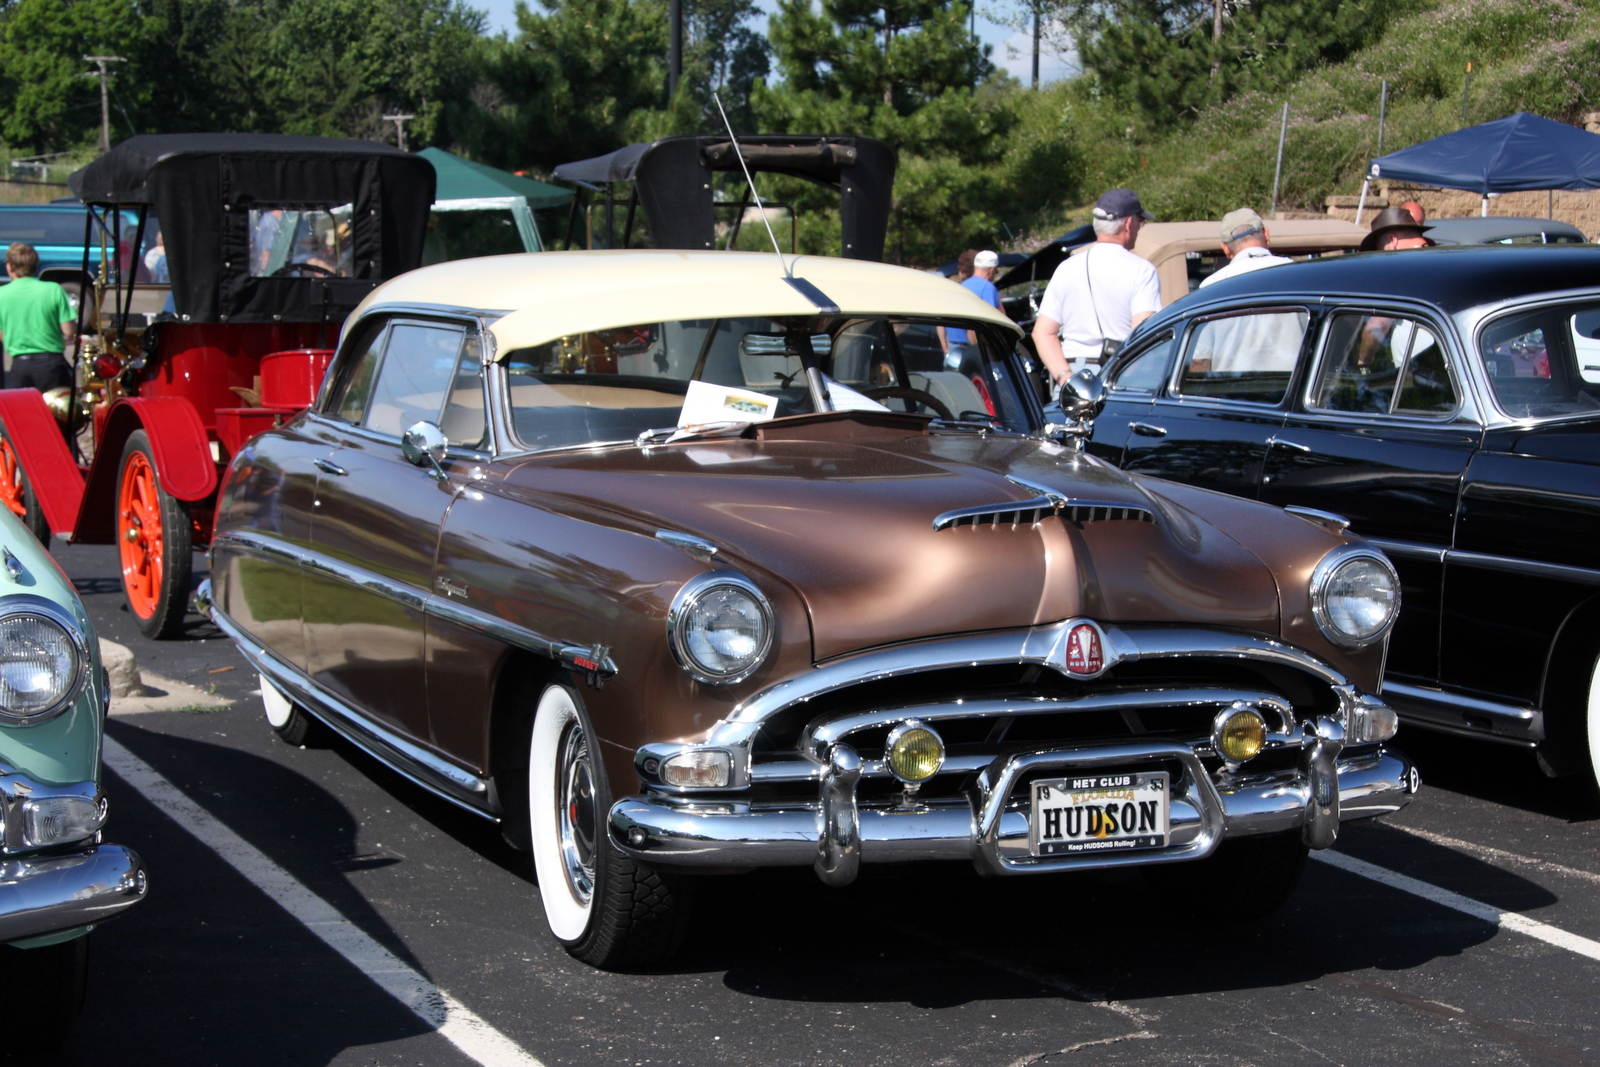 File:Hudson Hornet Hollywood.jpg - Wikimedia Commons